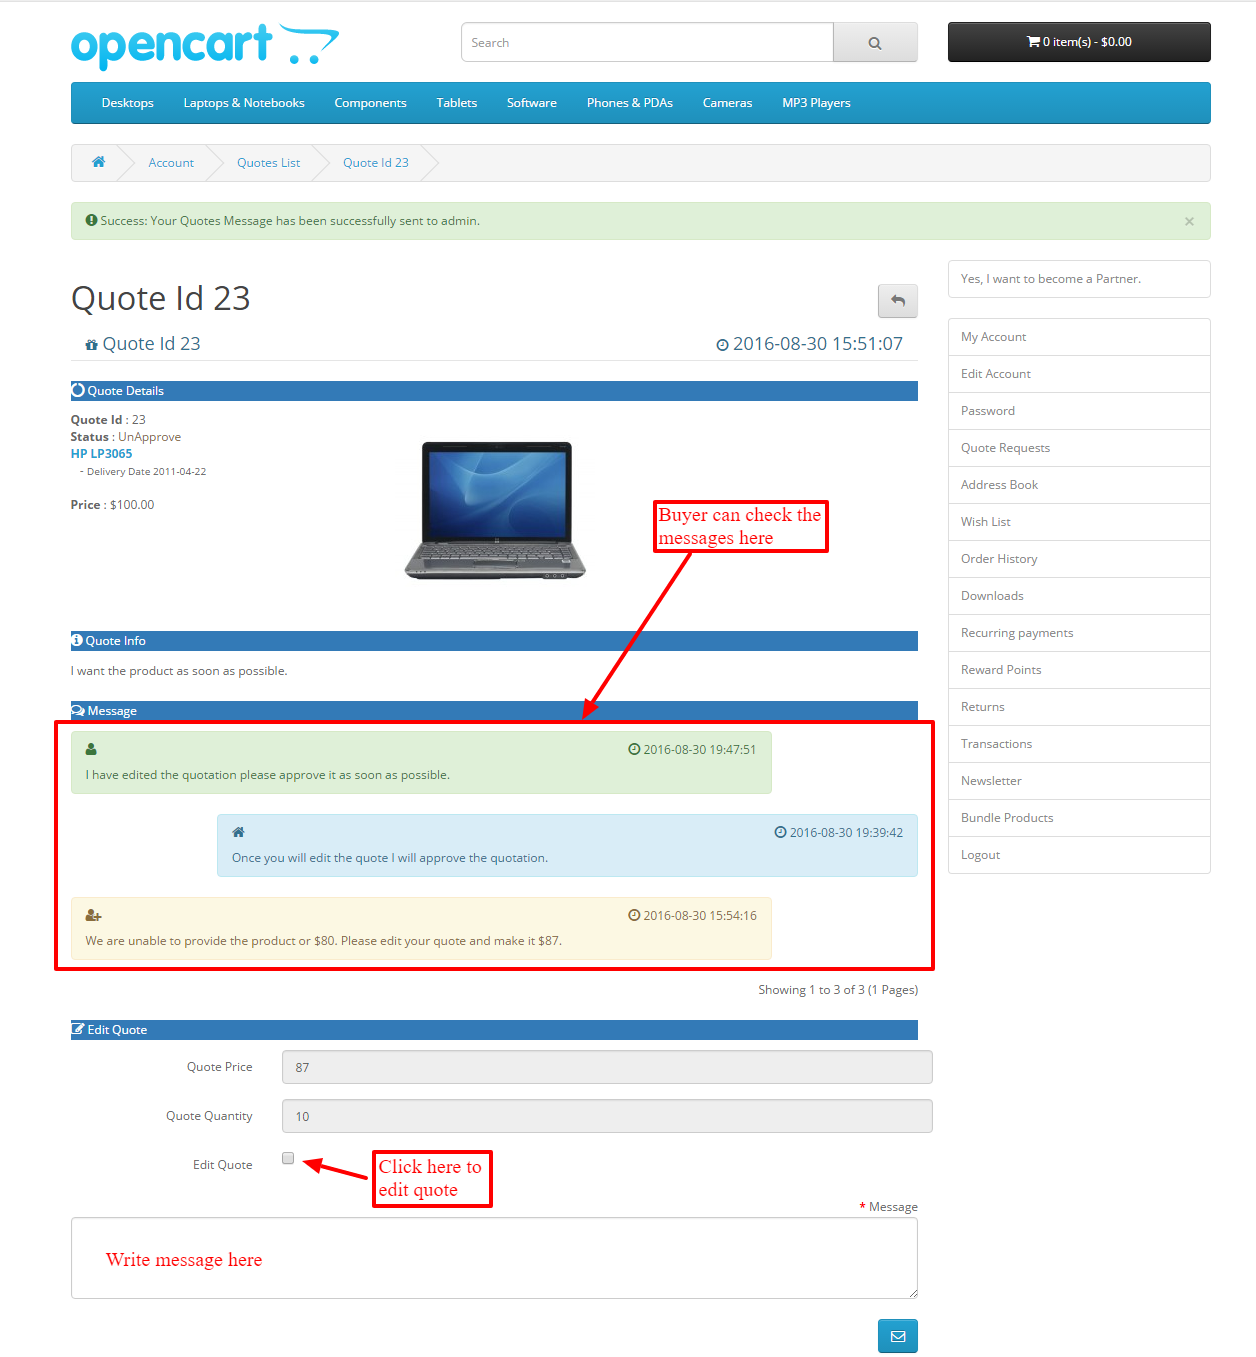 Opencart Marketplace Product Quote System - How to send quotation email to customer